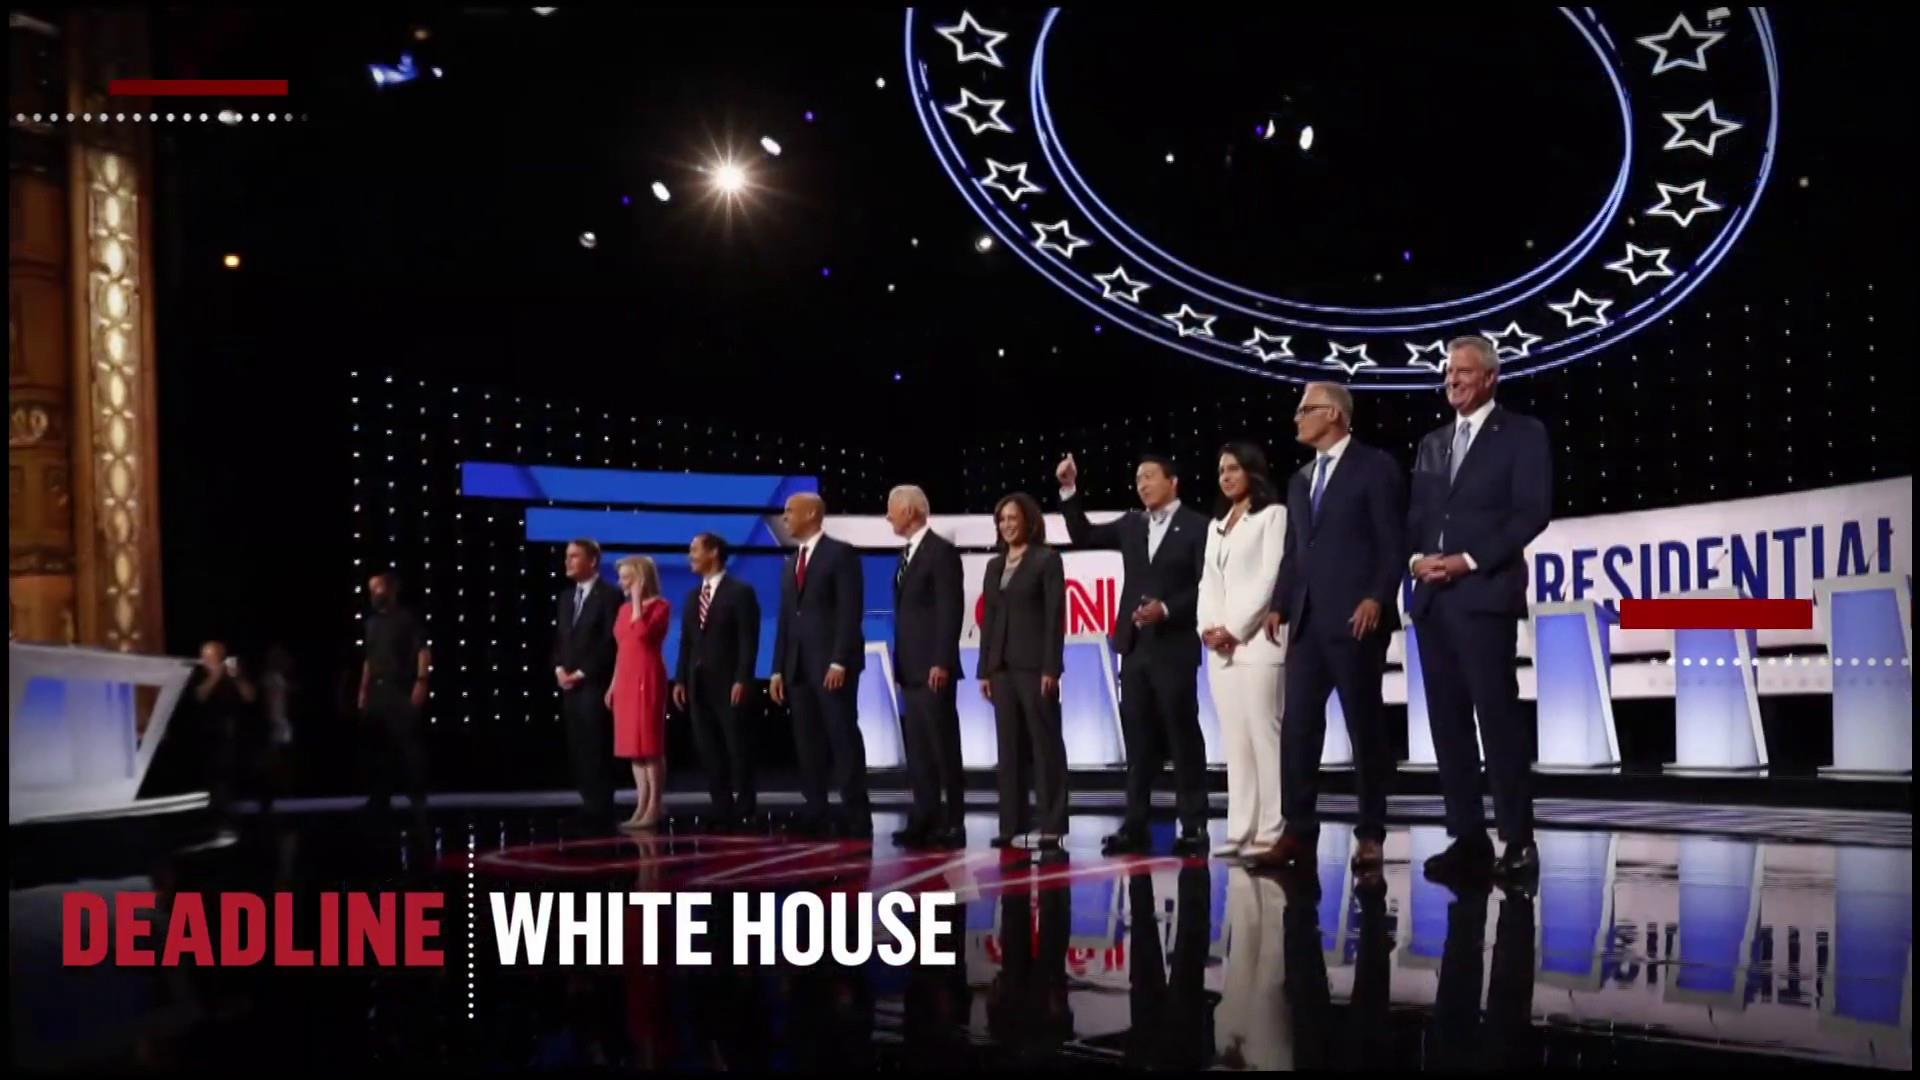 We could soon see a 'culling of the herd' of 2020 candidates